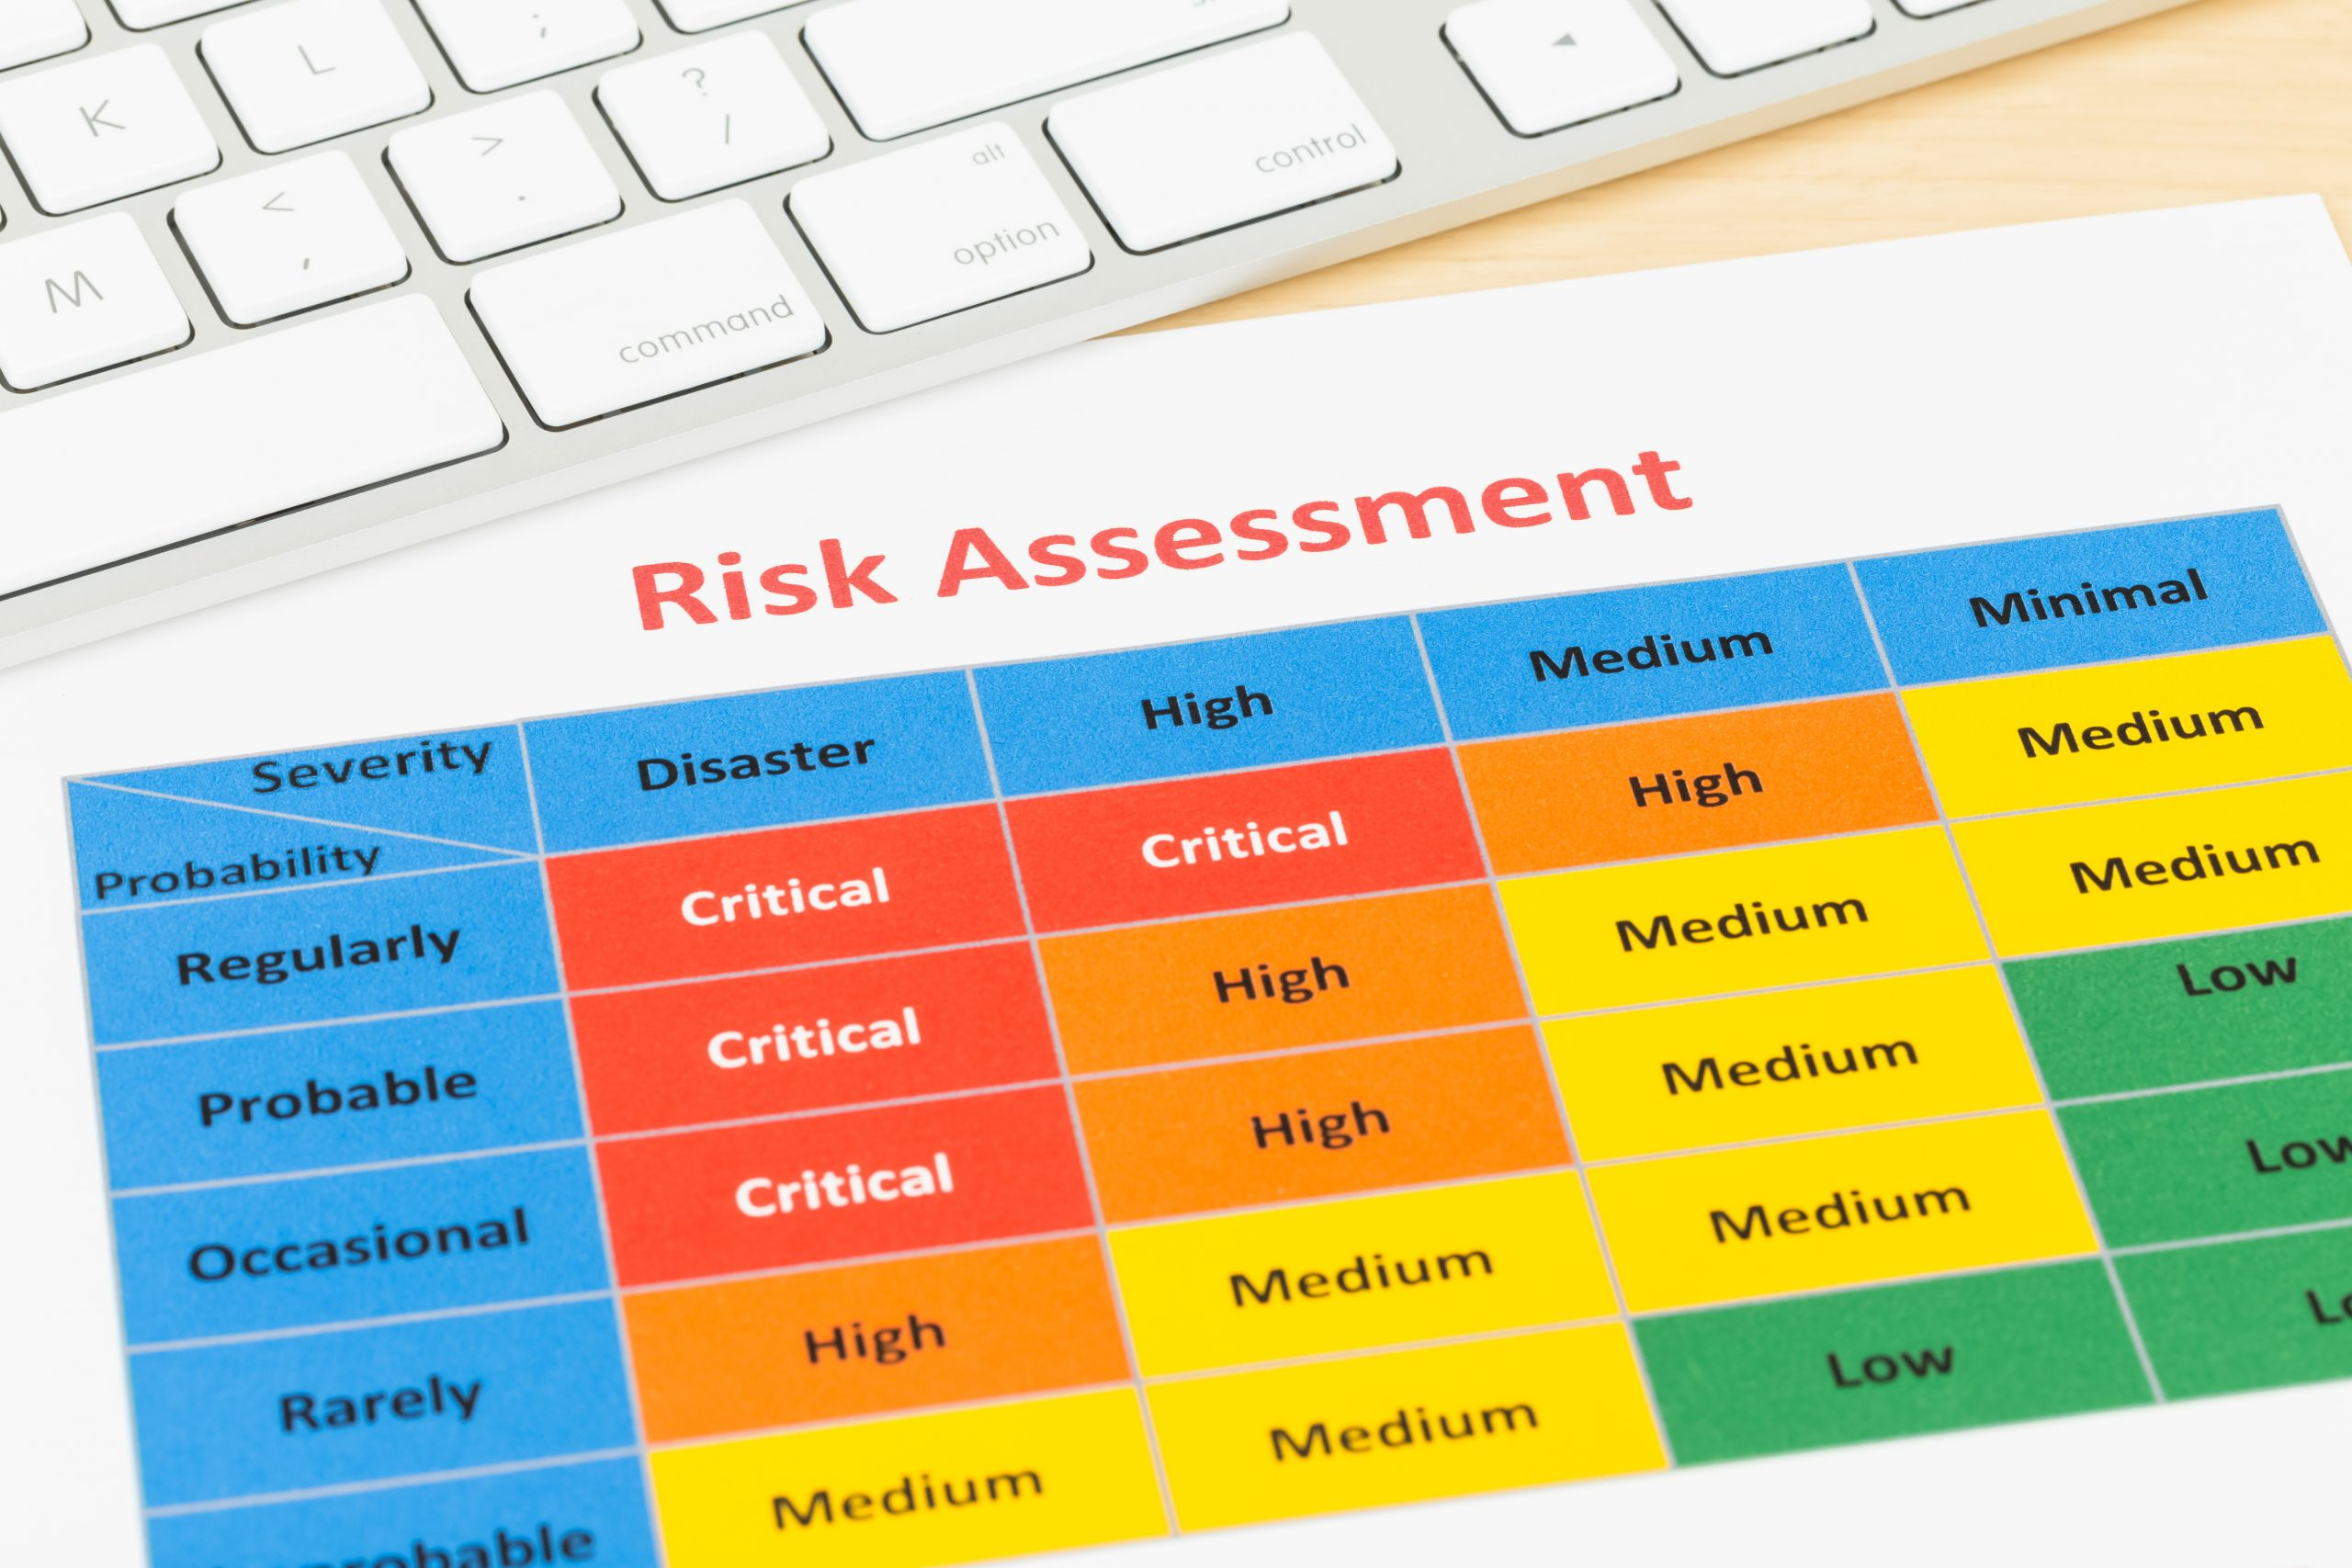 A risk assessment form on a desk